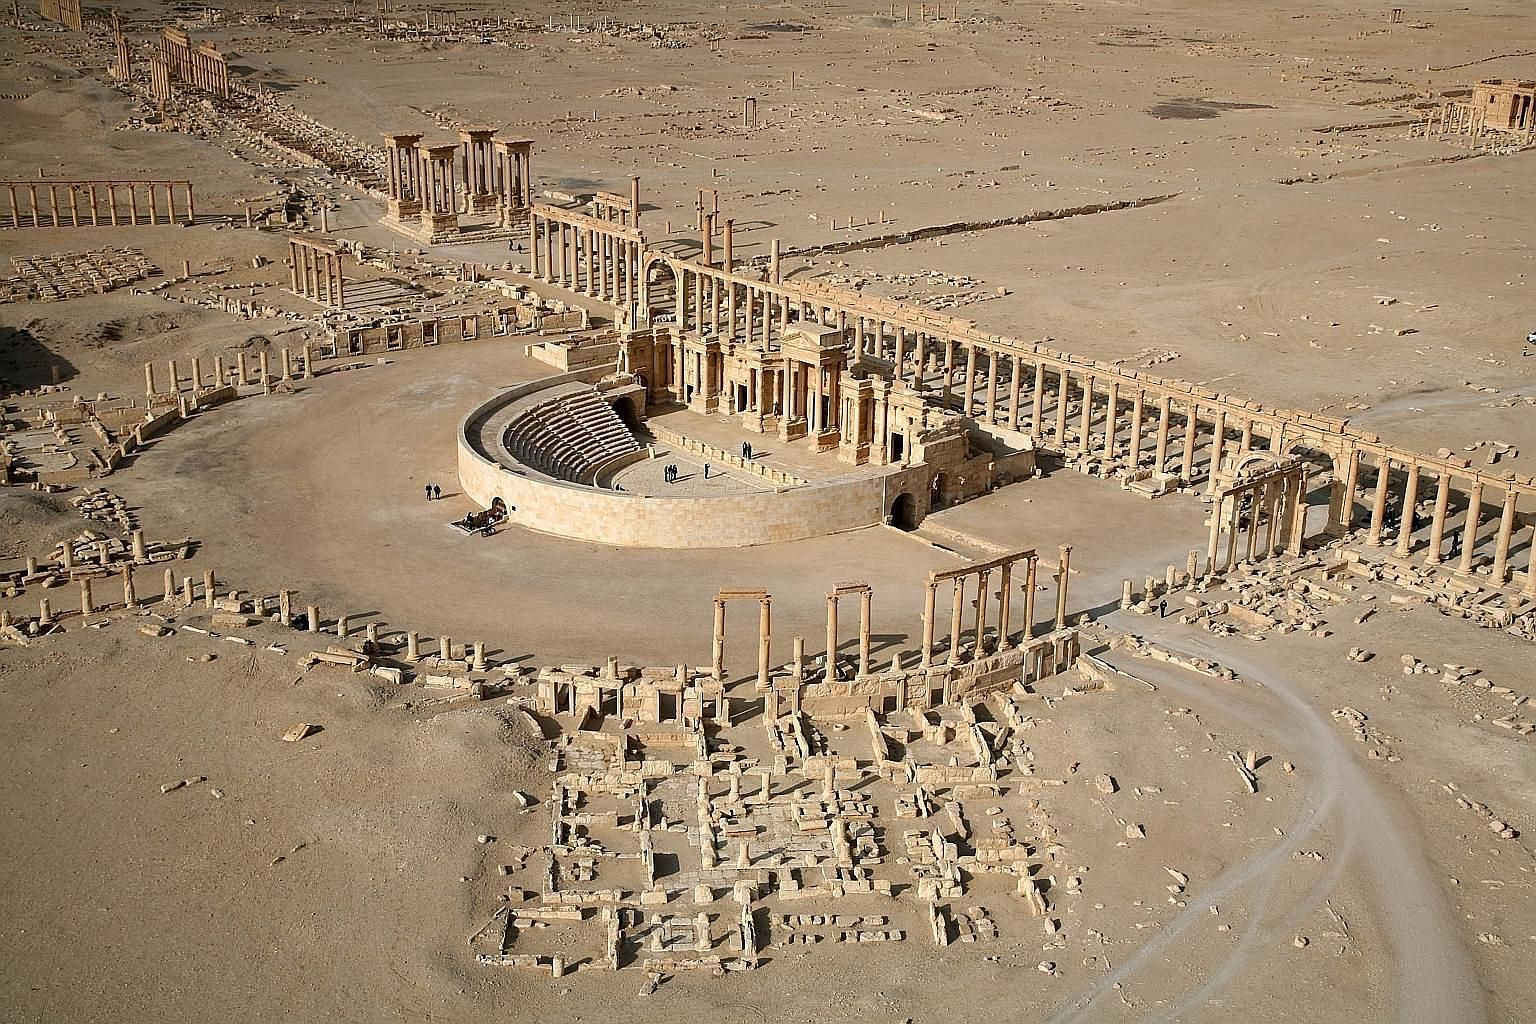 A 2009 picture showing part of the World Heritage site of Palmyra in Syria. The Islamic State in Iraq and Syria has blown up three tower tombs along with two famed temples there. The amphitheatre has been exploited as a stage for the militants' grisl